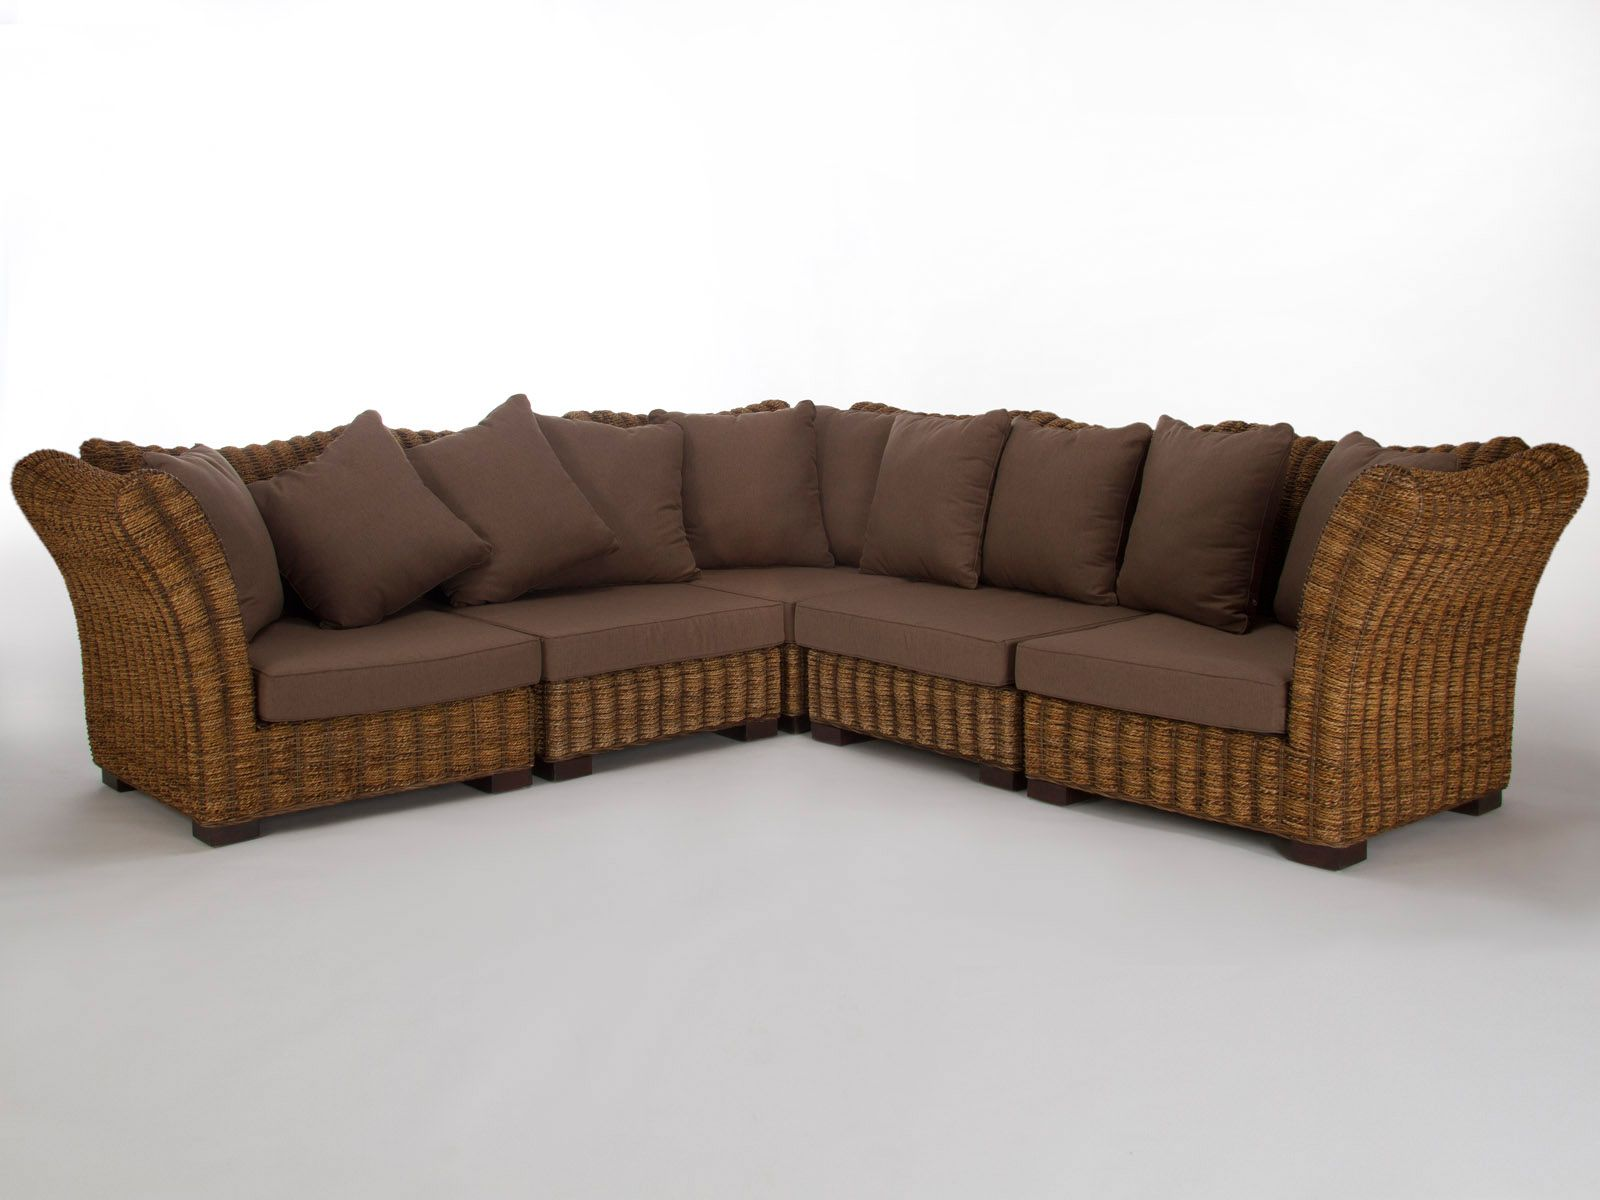 Image of: Outdoor Wicker Furniture